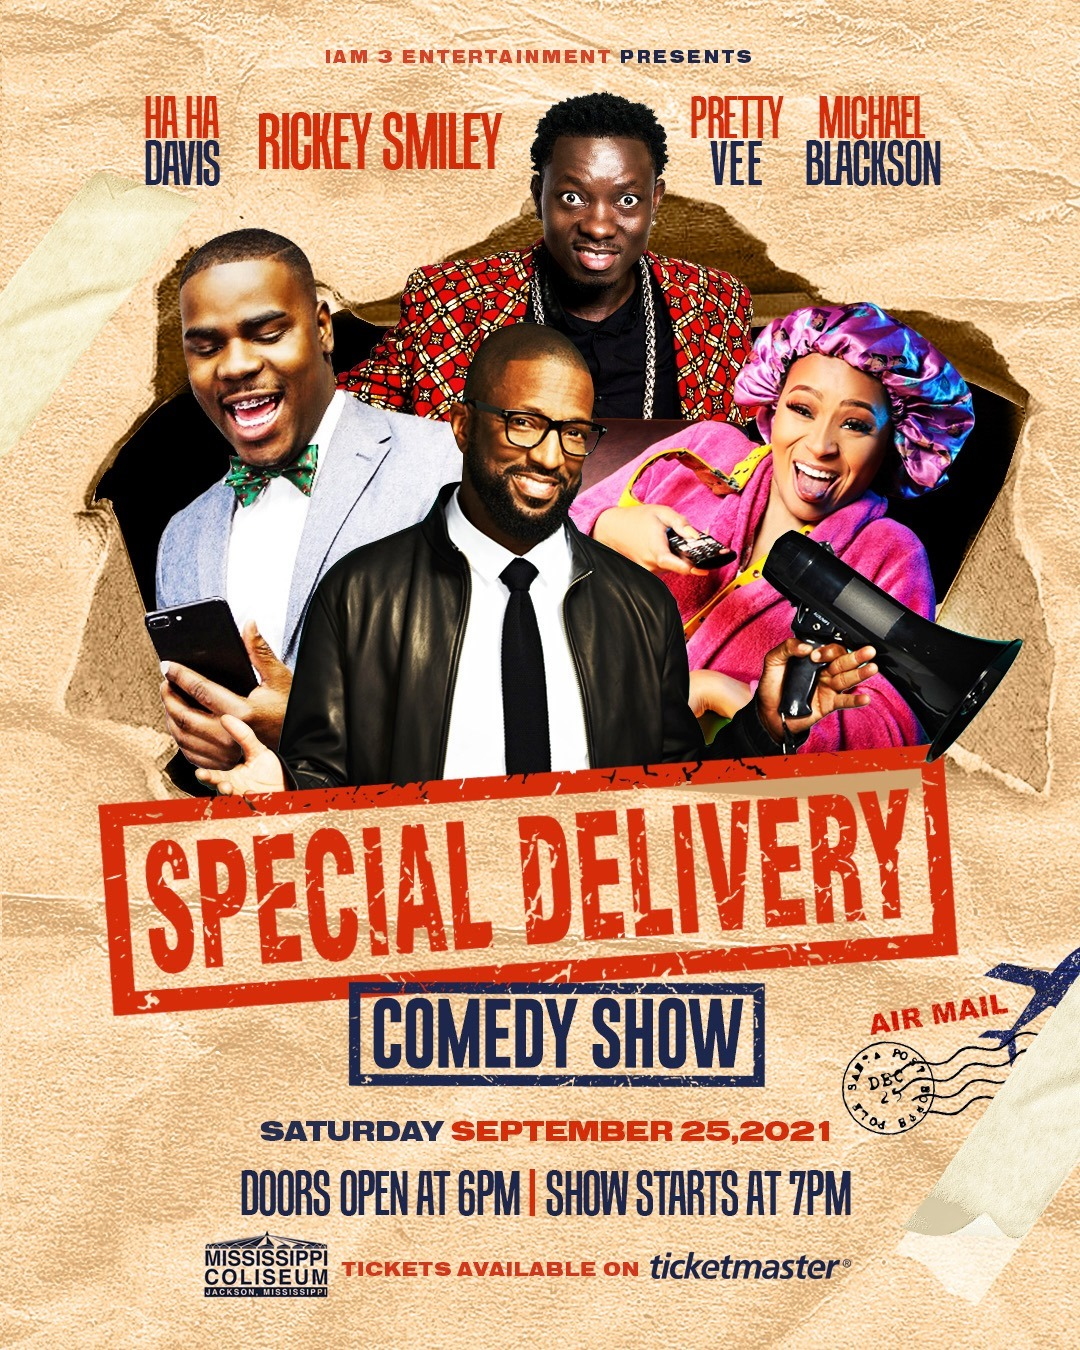 Special Delivery Comedy Show